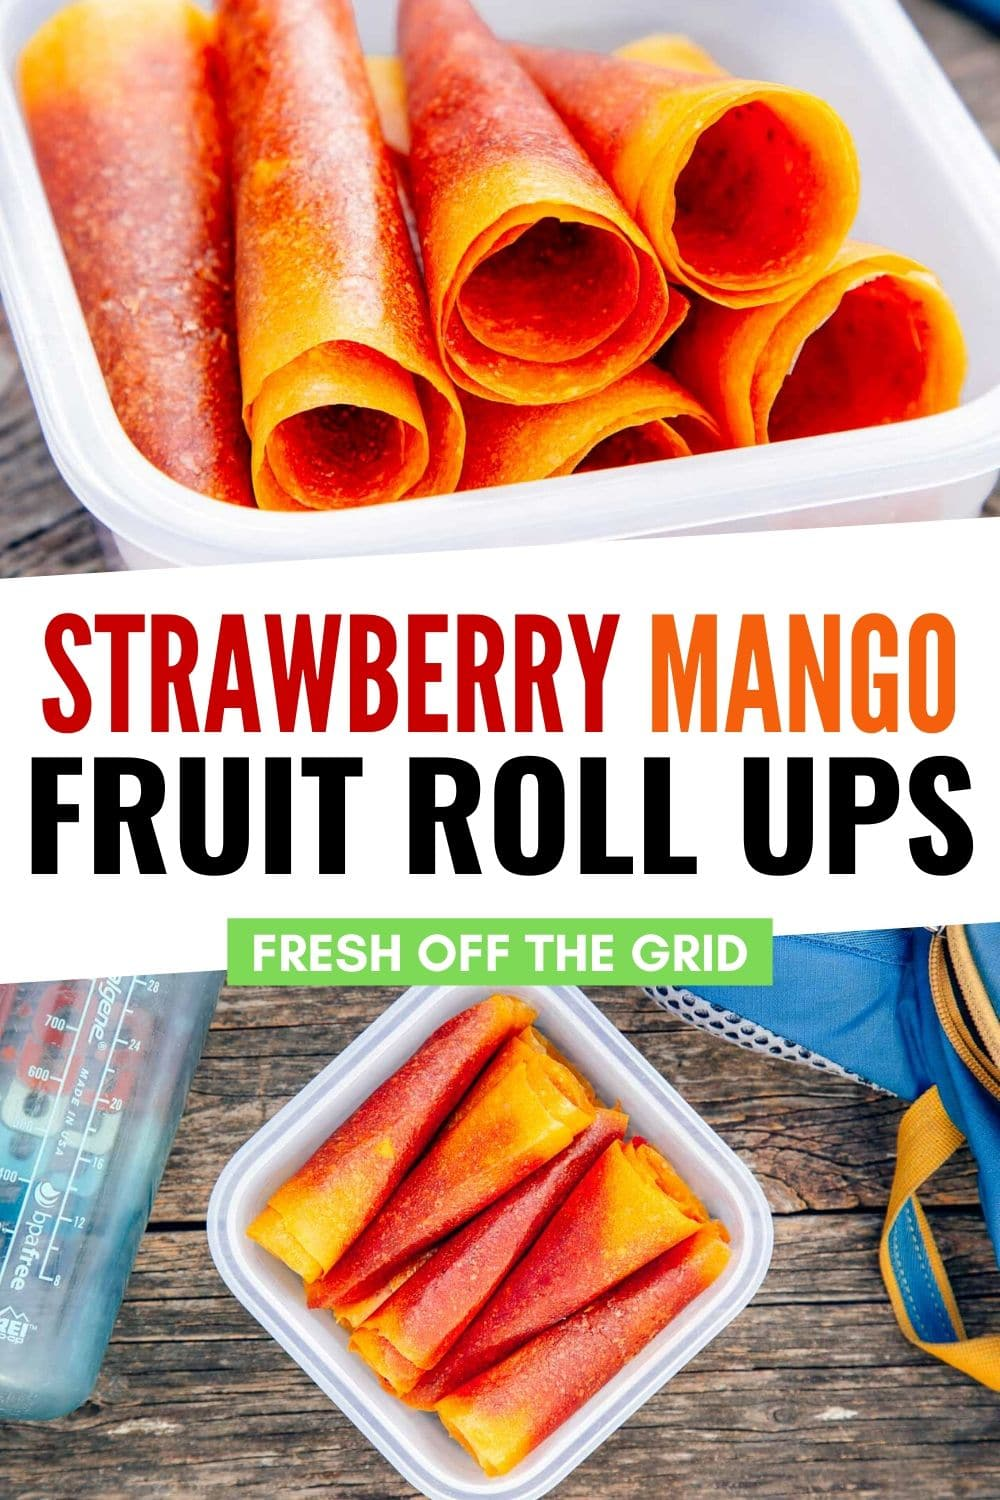 A tropical kaleidoscope of flavor and color, these tie-dyed fruit leathers are our healthy-ish riff on the classic 90's snack food. They're a perfect grab-and-go snack for hiking. via @freshoffthegrid